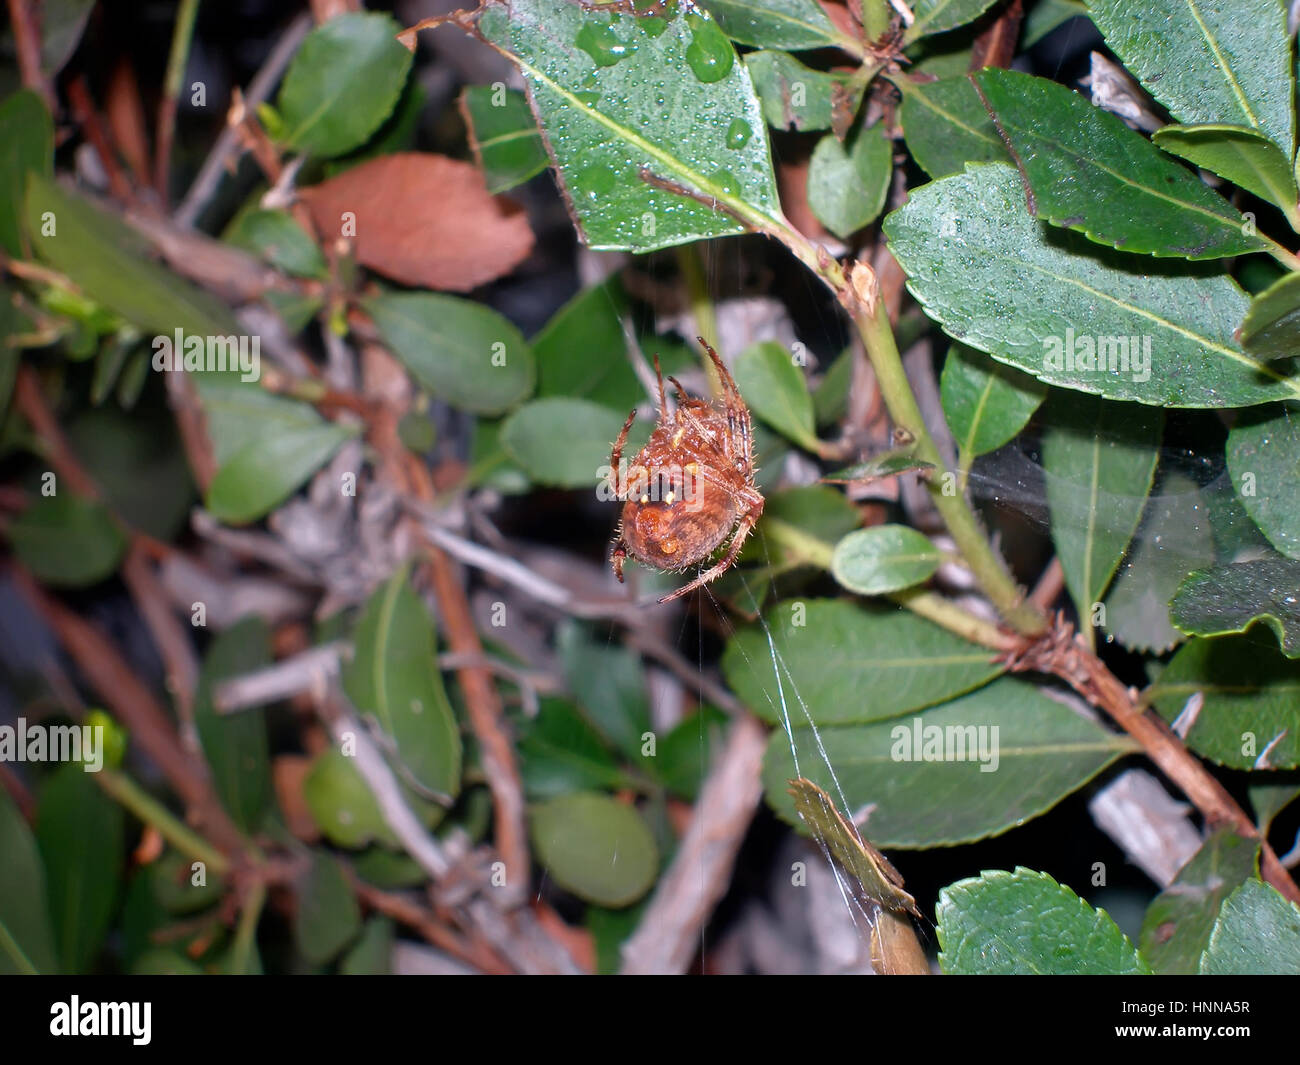 Orb Weaver Spider traverses an uncharacteristic web. - Stock Image